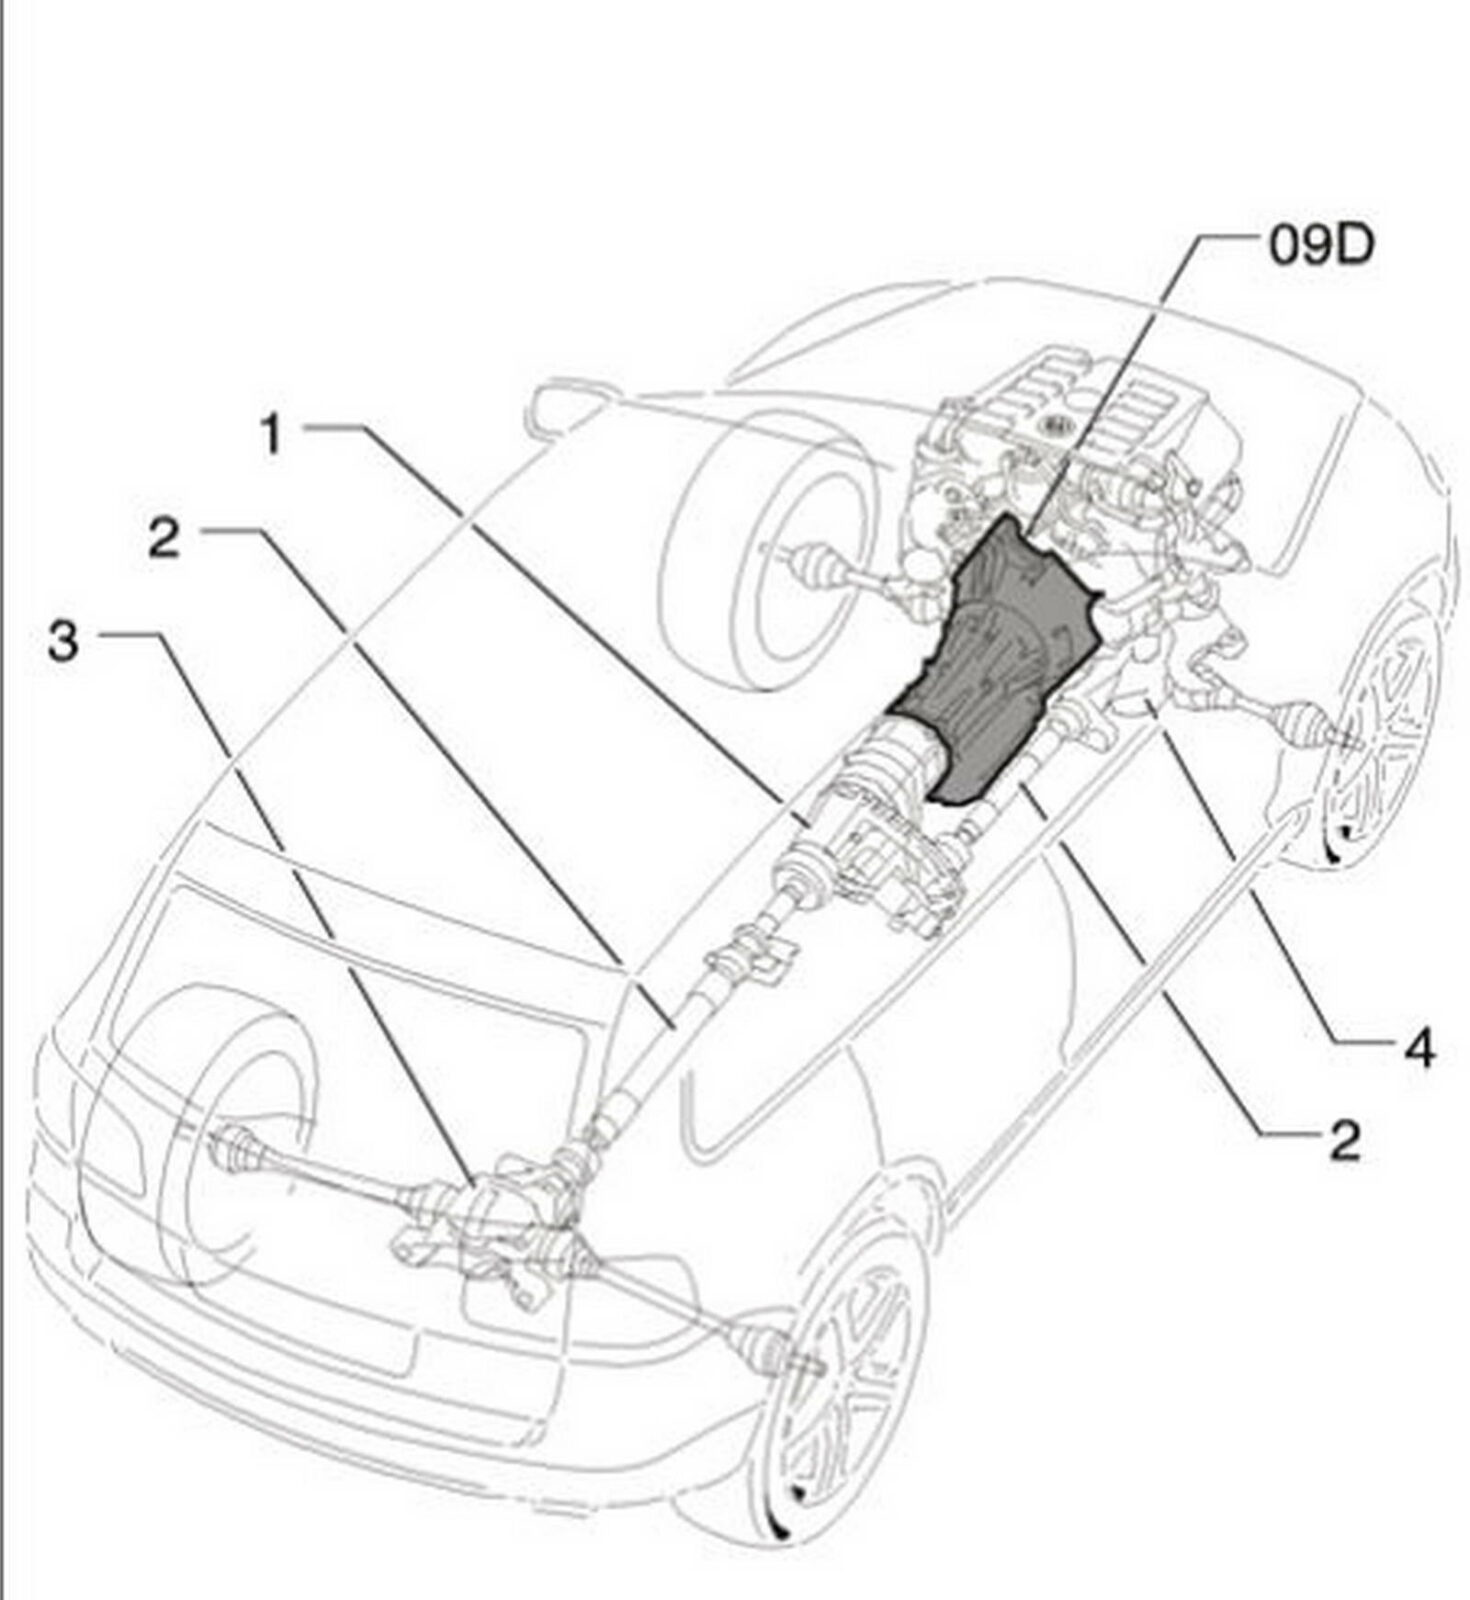 VW 6-Speed Volkswagen Automatic Transmission 09D Repair